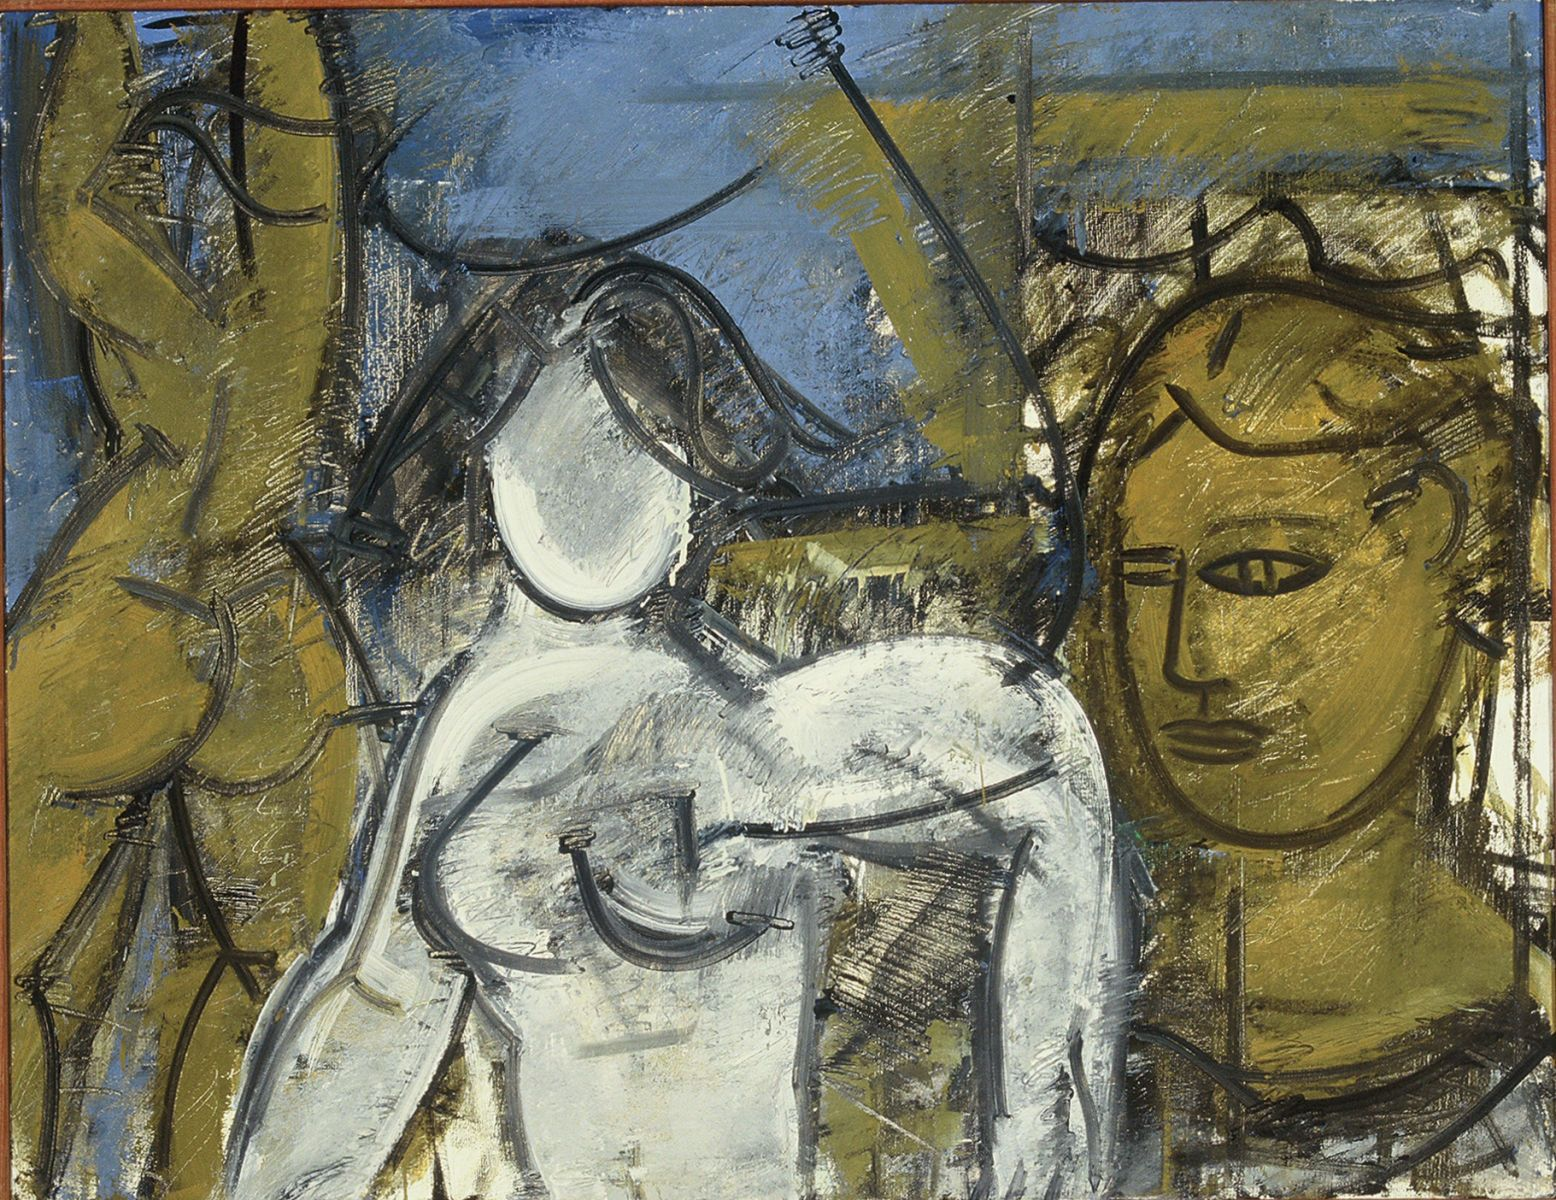 Composition w TWO FIGURES and SELF PORTRAIT HEAD   1971 Berkeley  private collection Palp Alto CA